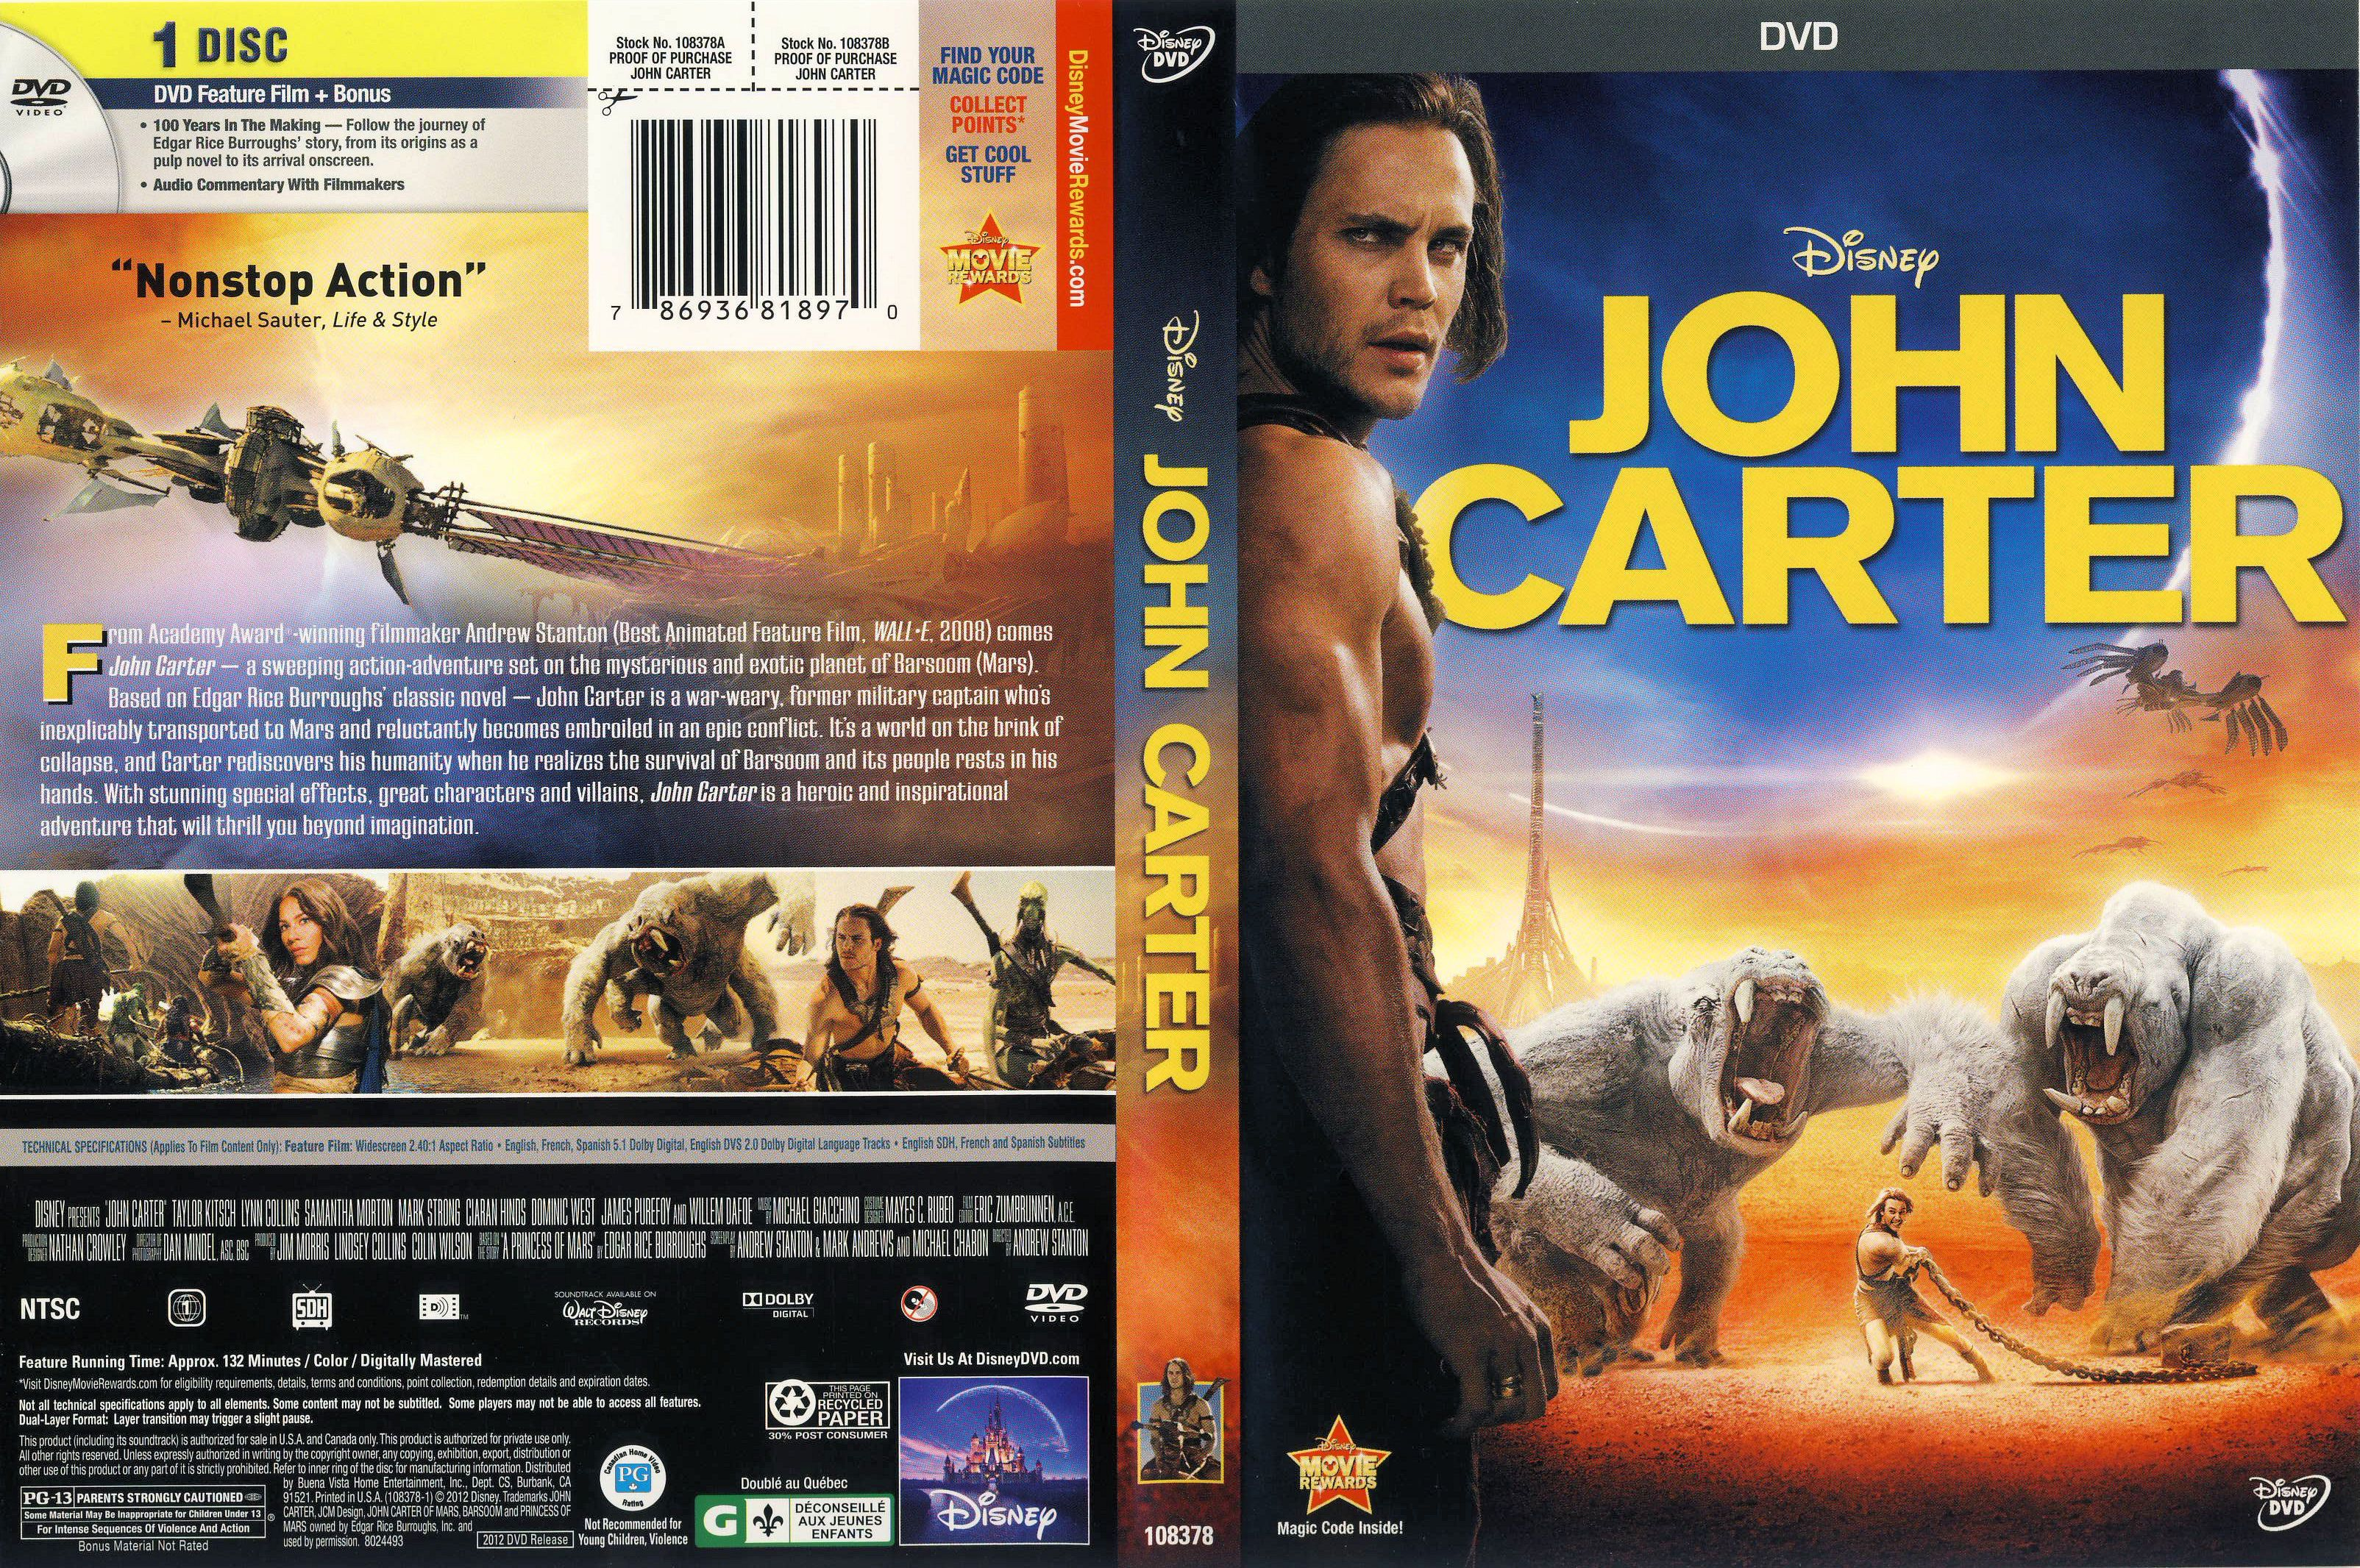 movies on dvd | john carter 2012 ws r1 movie dvd front dvd ...